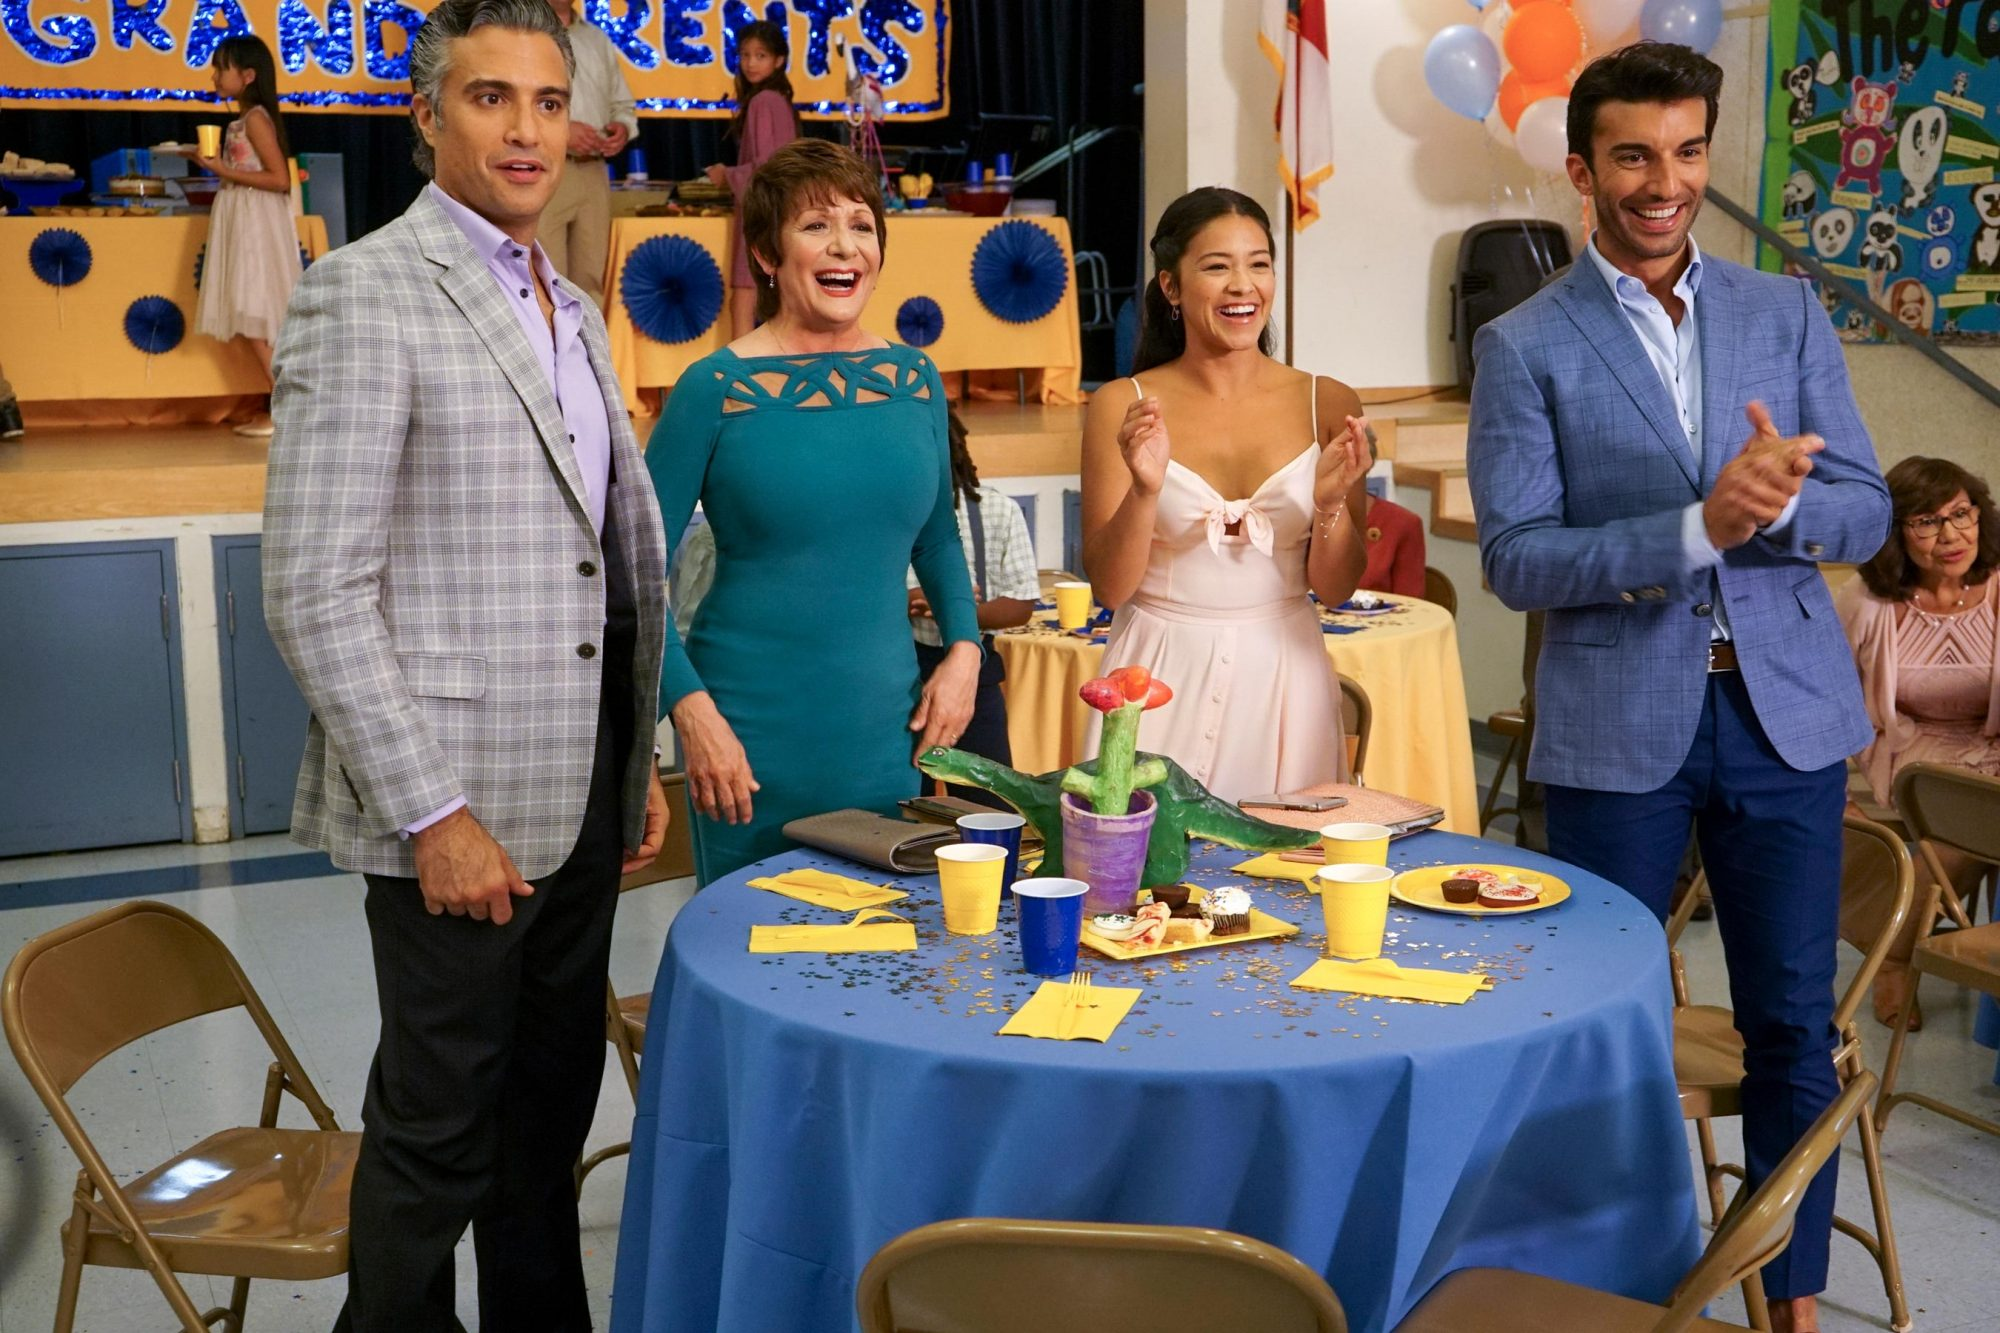 RECAP: 04/17/19 Jane The Virgin